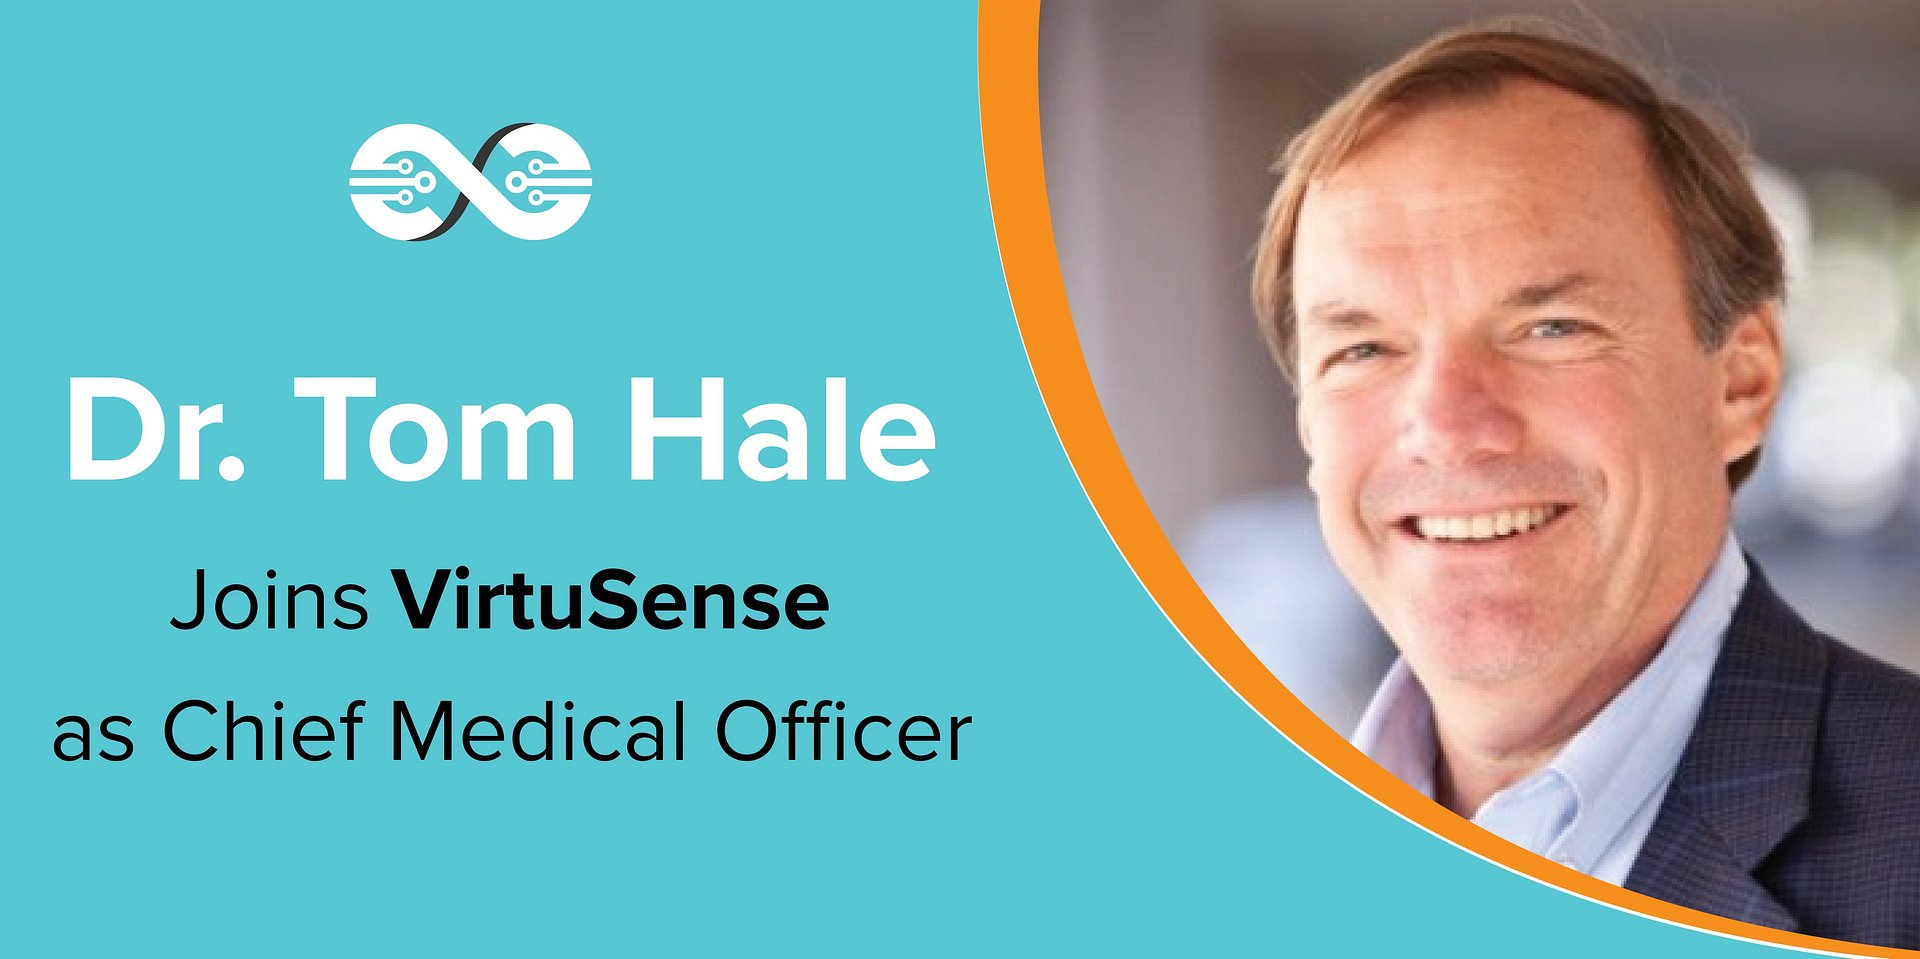 Dr. Tom Hale Joins VirtuSense as Chief Medical Officer